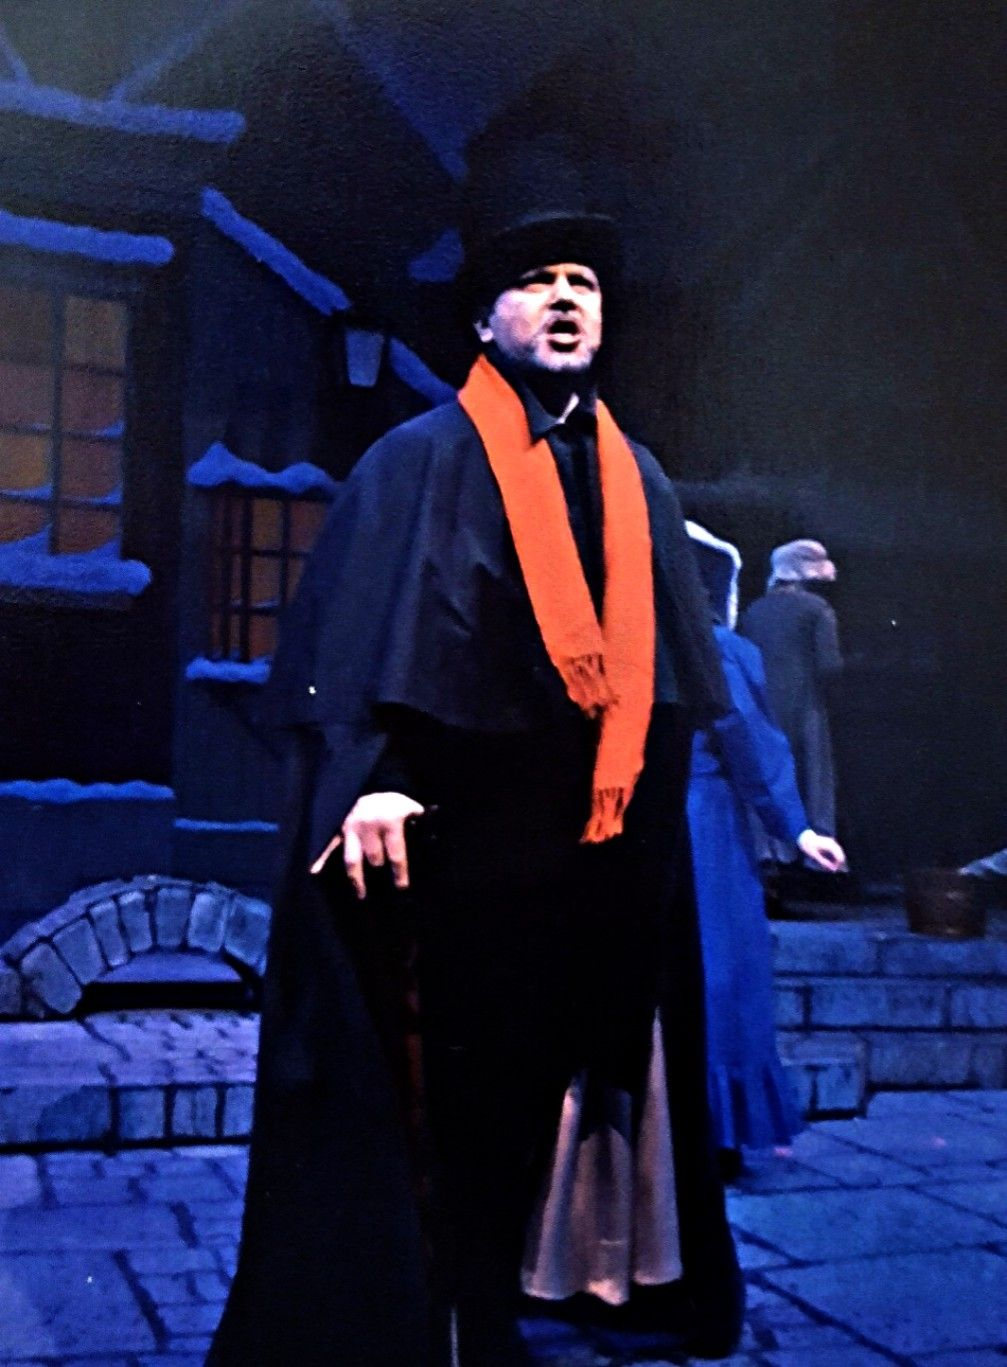 """Philip Paul Kelly as """"Ebenezer Scrooge"""" in a scene from """" A Christmas Carol."""""""